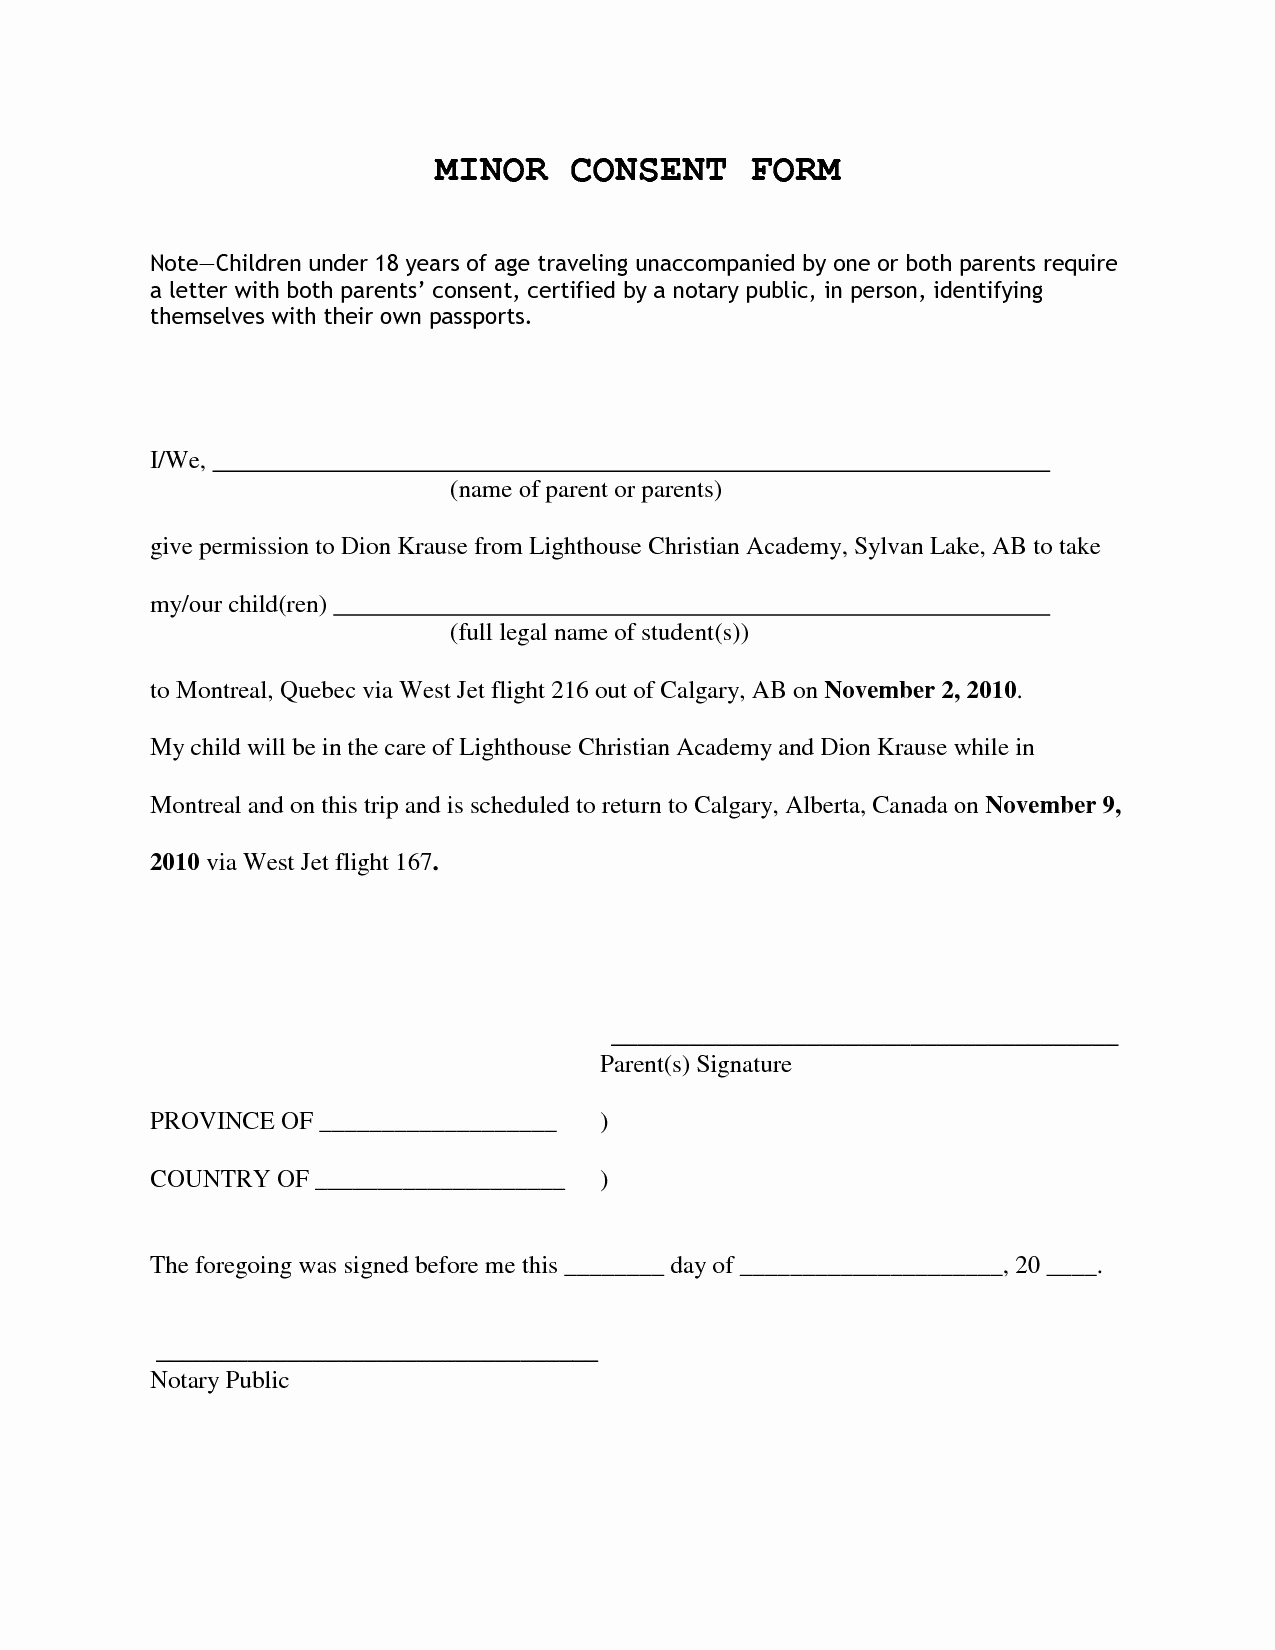 Letter Of Consent for Travel Of A Minor Child Template - Parental Consent form Template Uk Best Parental Consent form